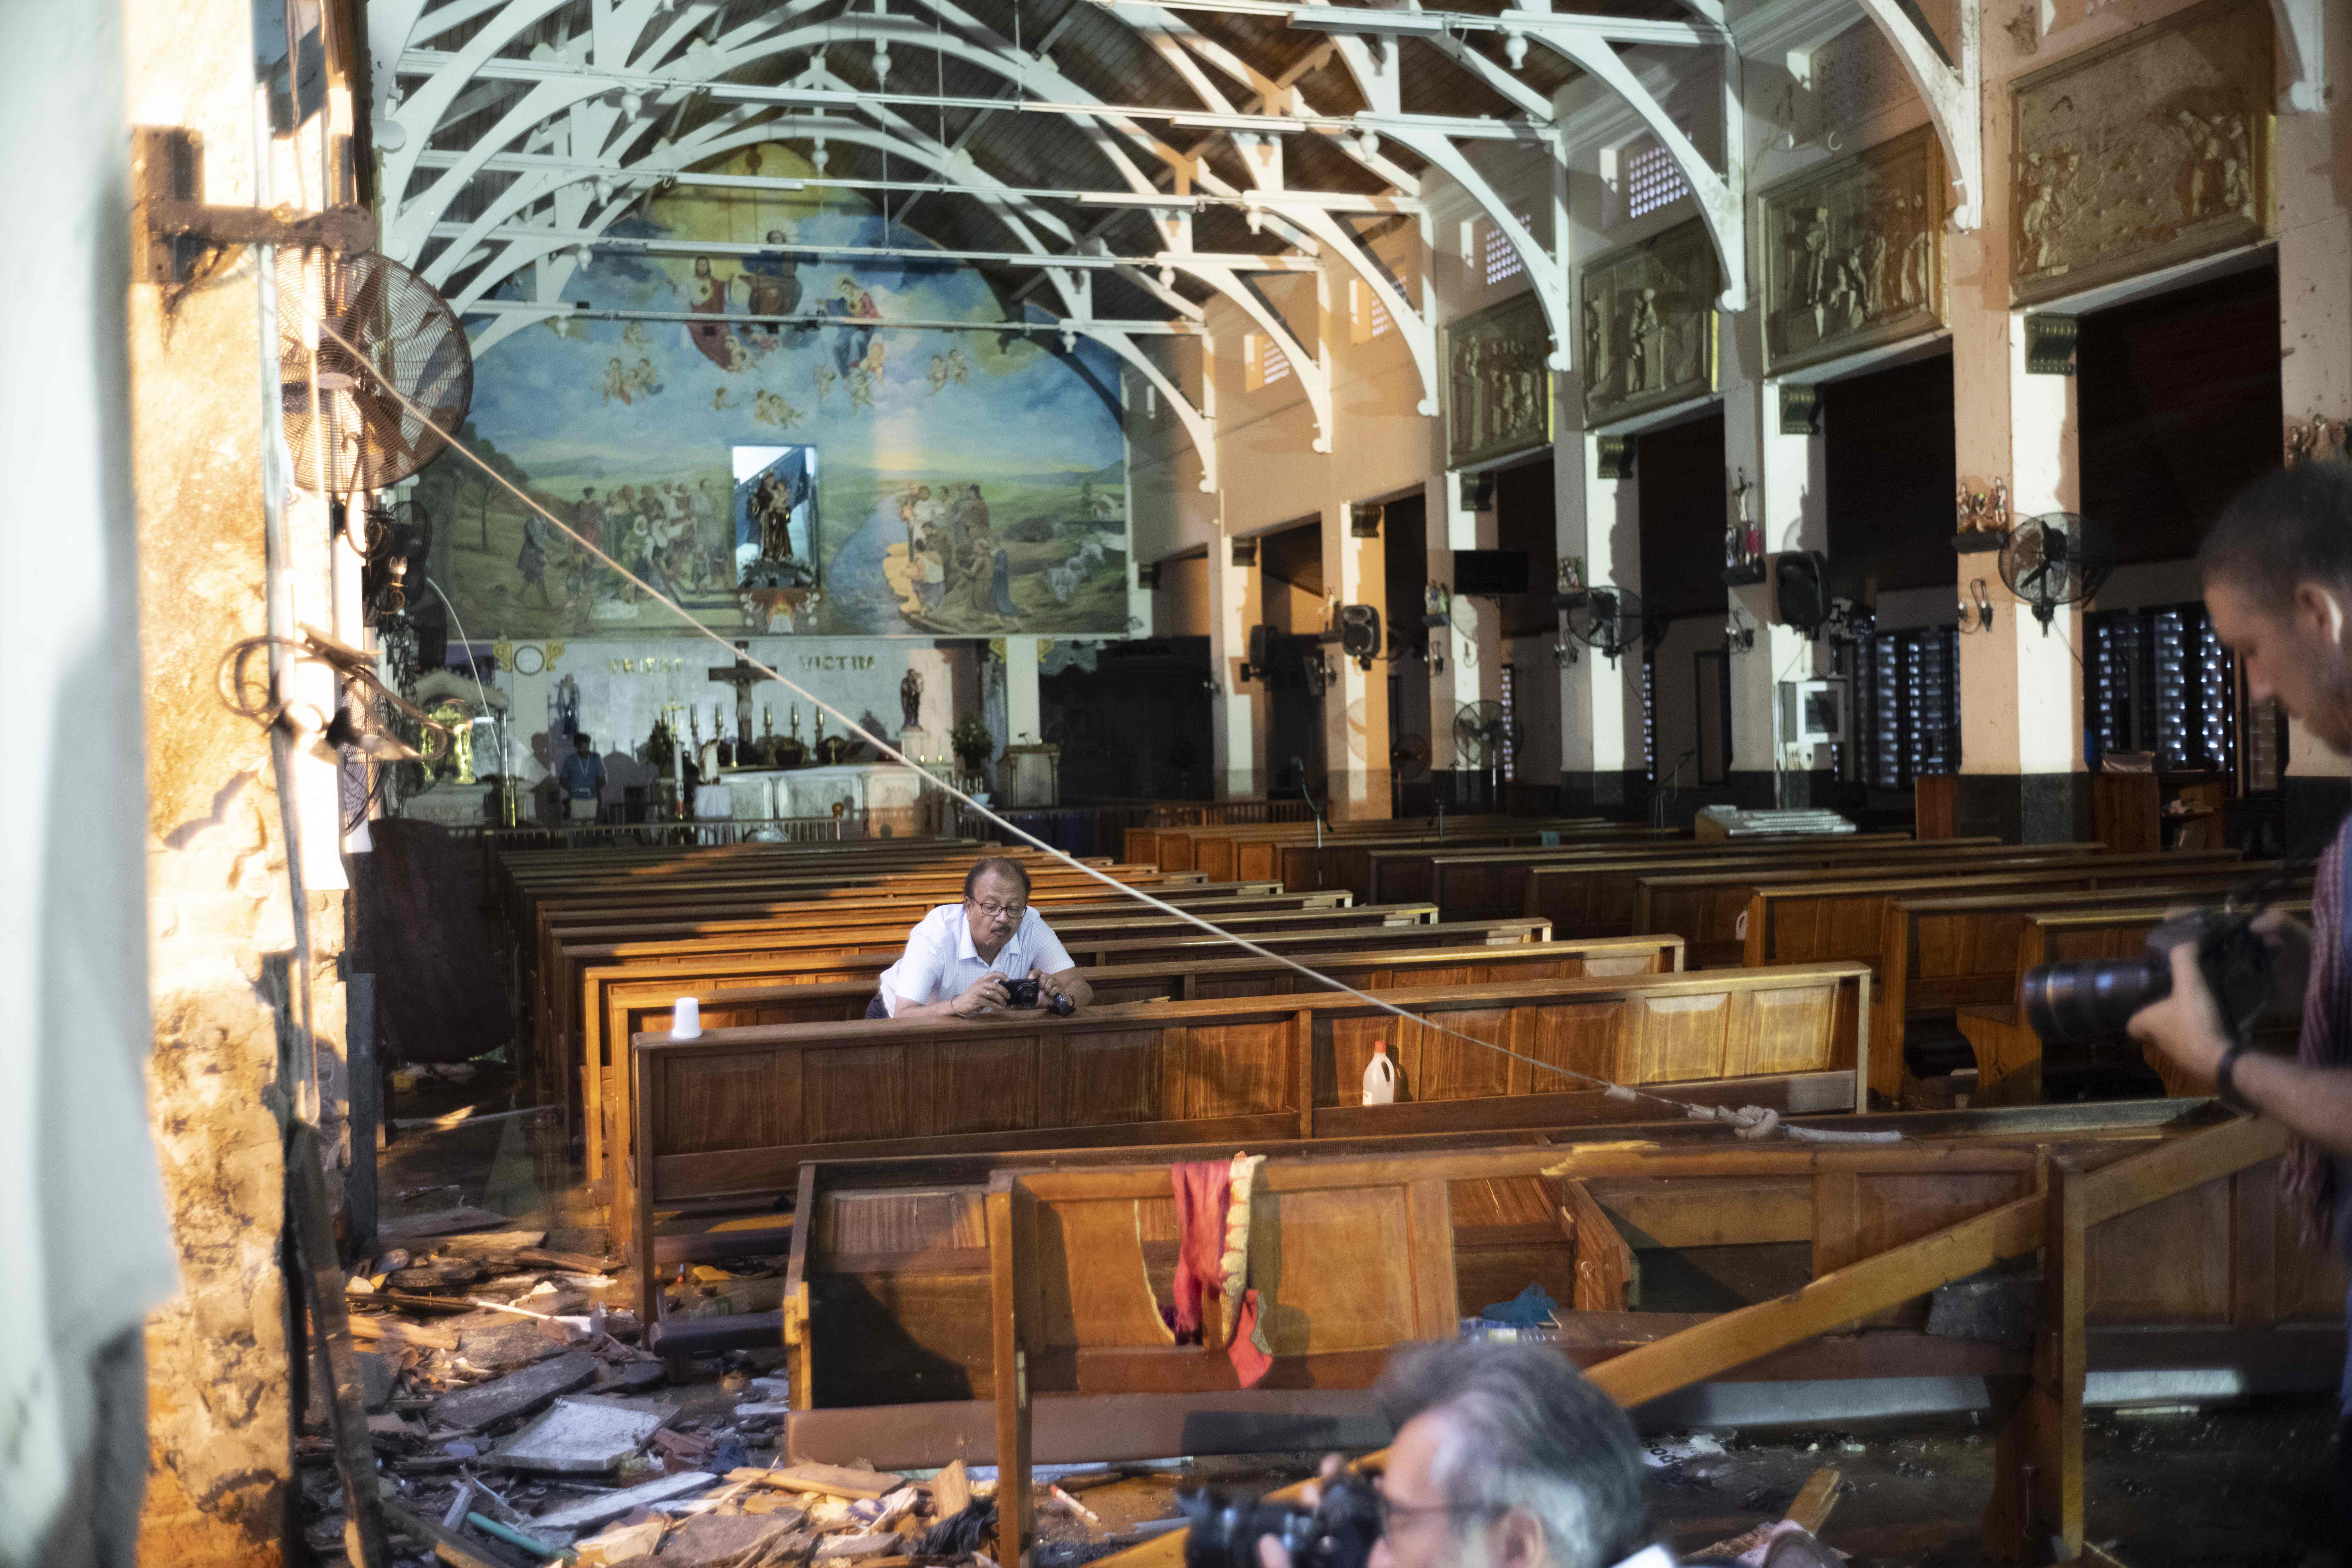 Journalists take pictures inside St. Anthony's Shrine in Colombo on April 26, 2019, following a series of bomb blasts targeting churches and luxury hotels on Easter Sunday in Sri Lanka. (JEWEL SAMAD/AFP/Getty Images)